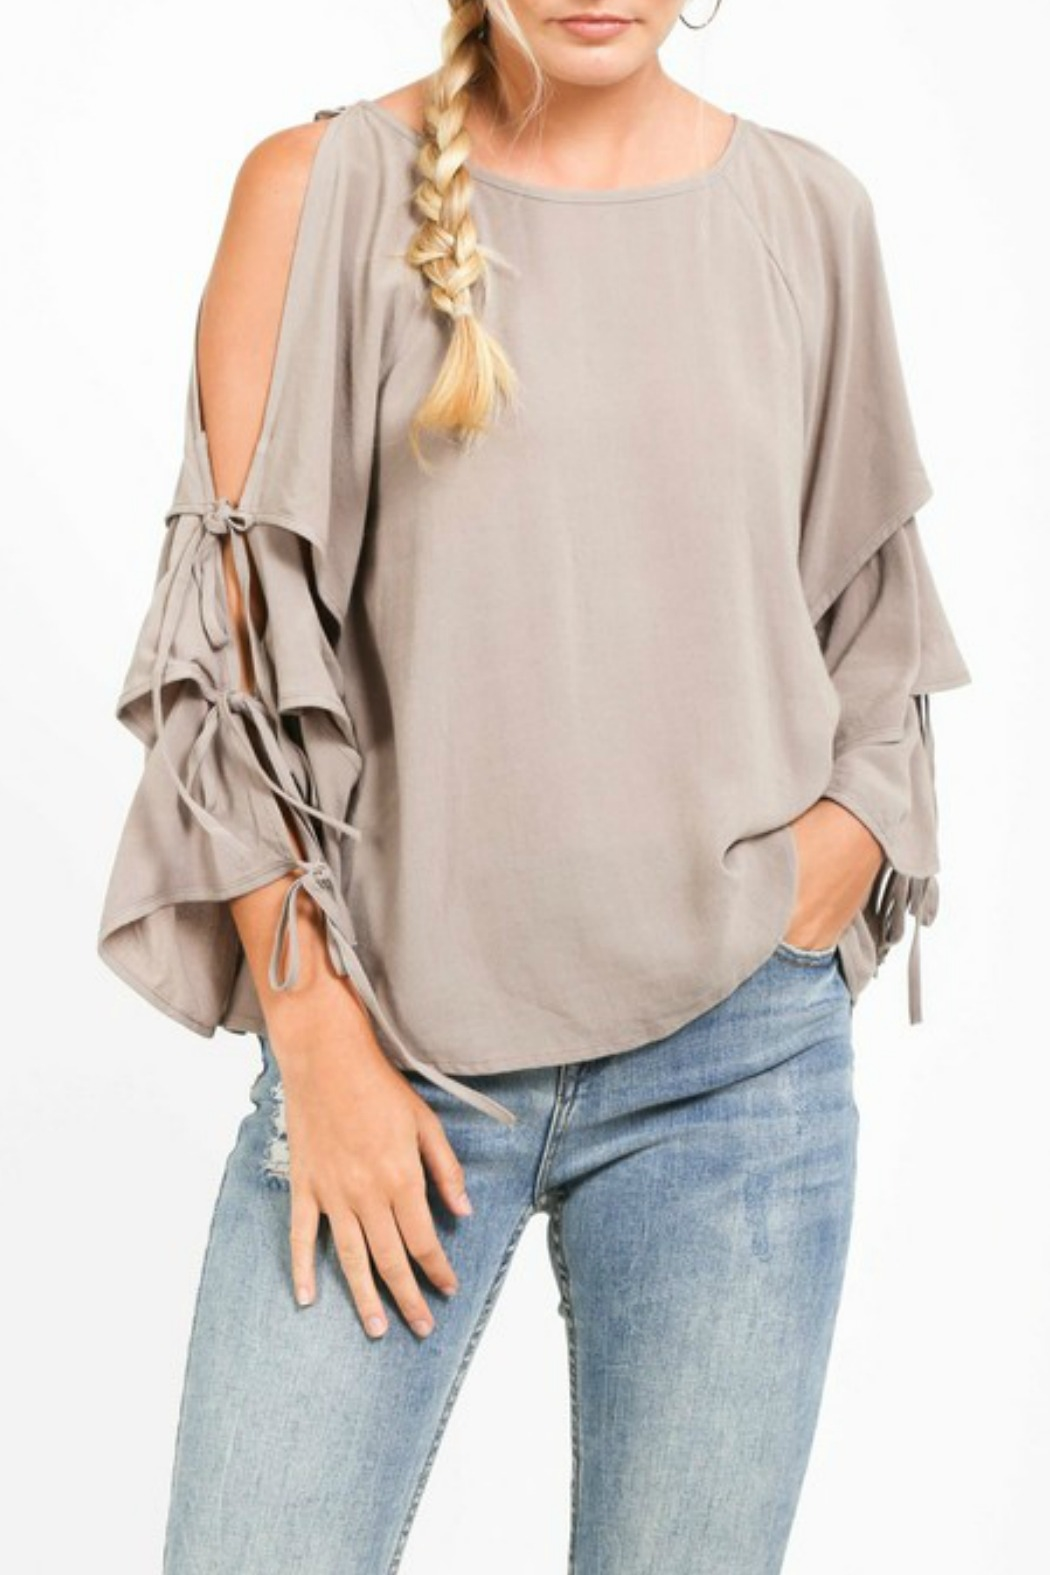 Very J Tiered Sleeve Top - Front Cropped Image